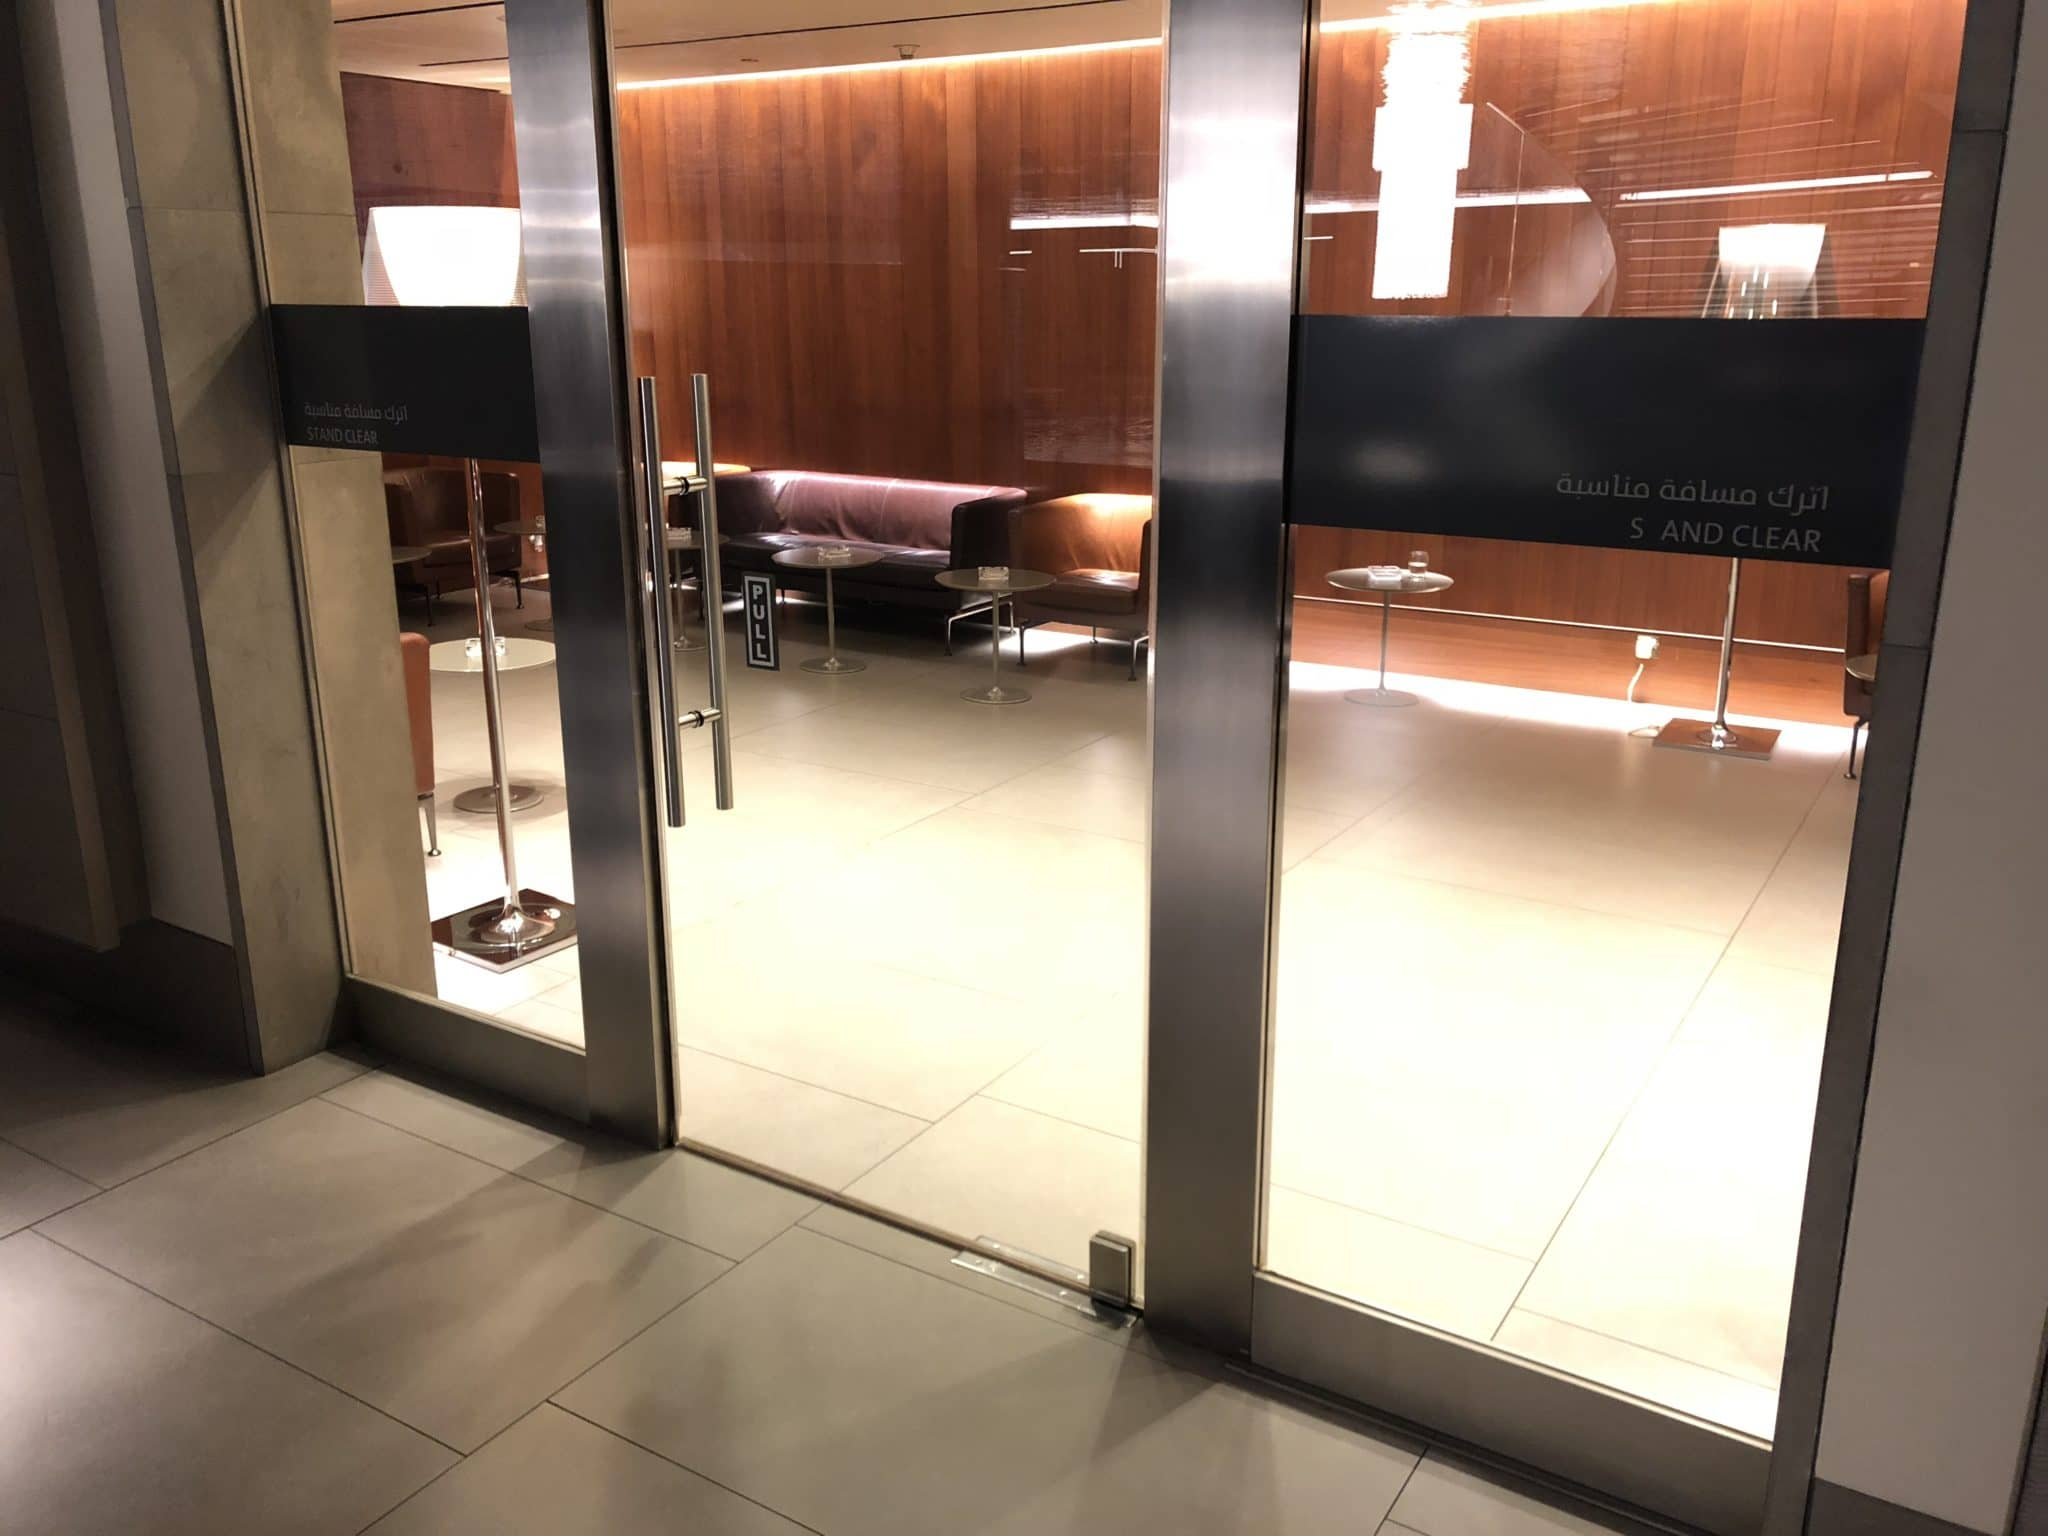 Qatar Airways Al Mourjan Business Class Lounge Raucherzimmer